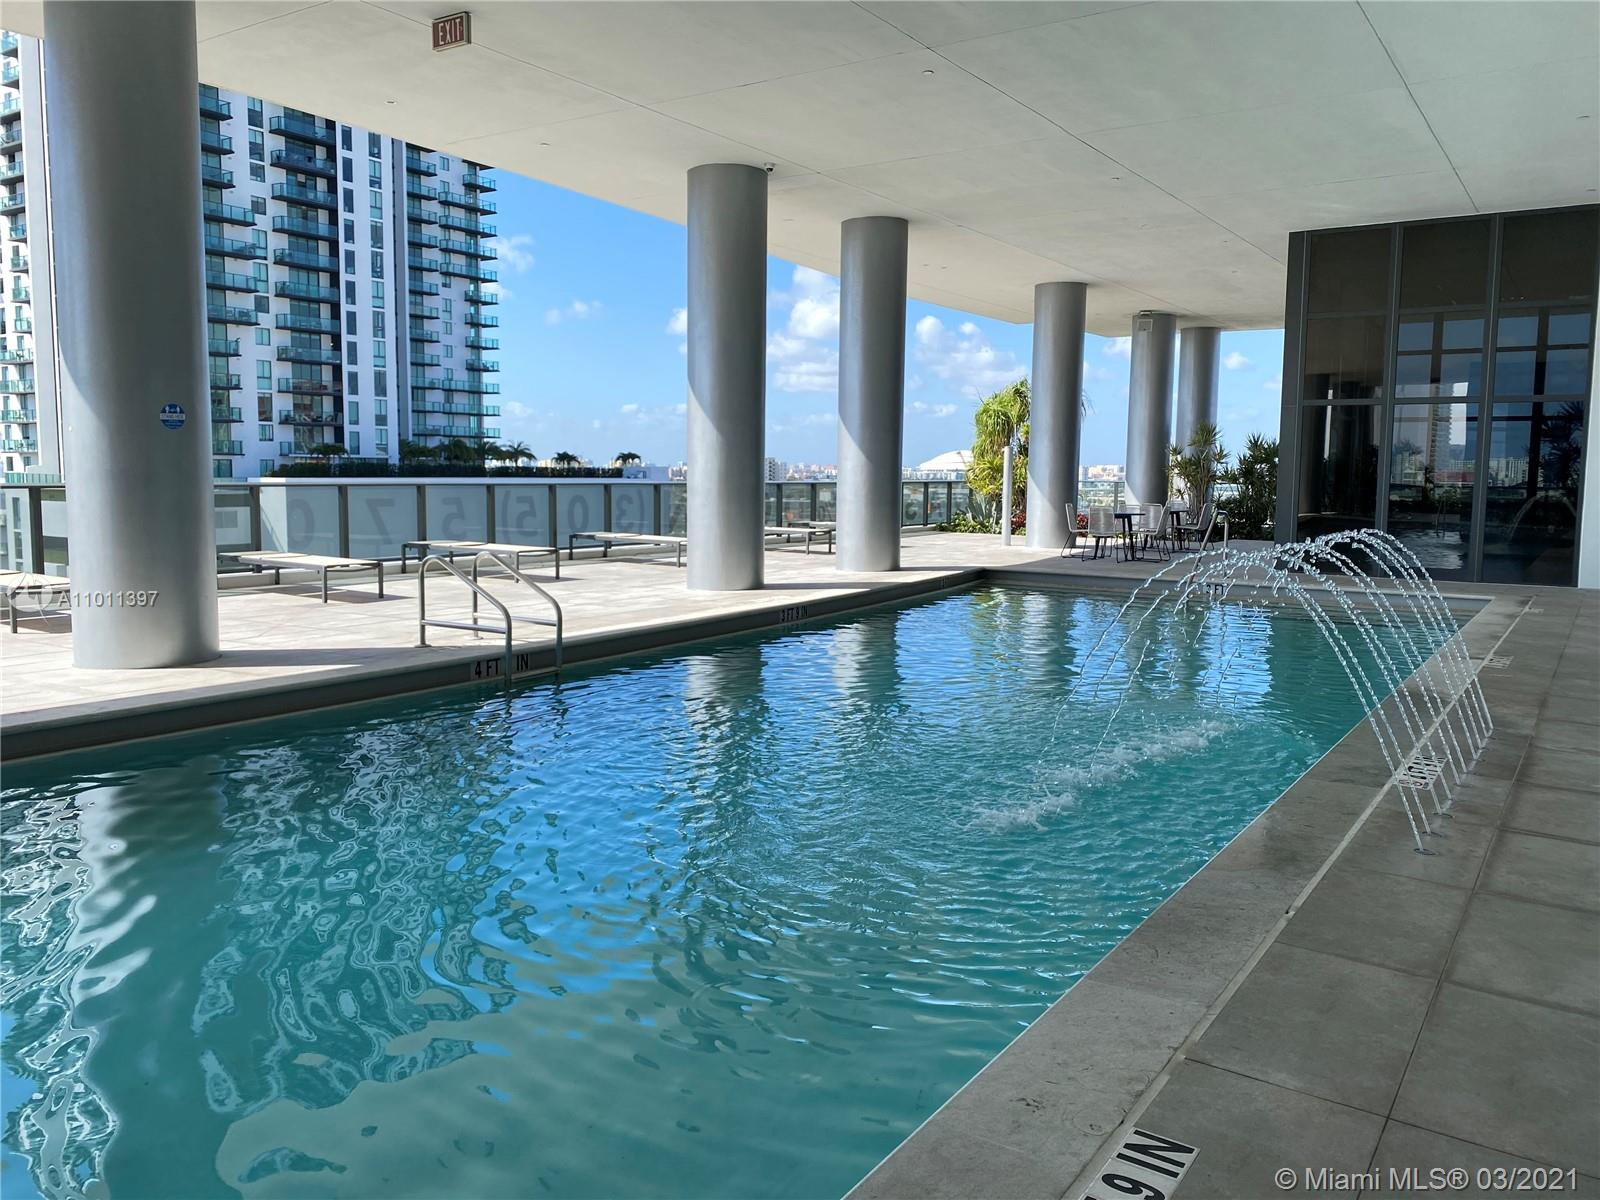 Canvas #1409 - 1600 NE 1st Ave #1409, Miami, FL 33132